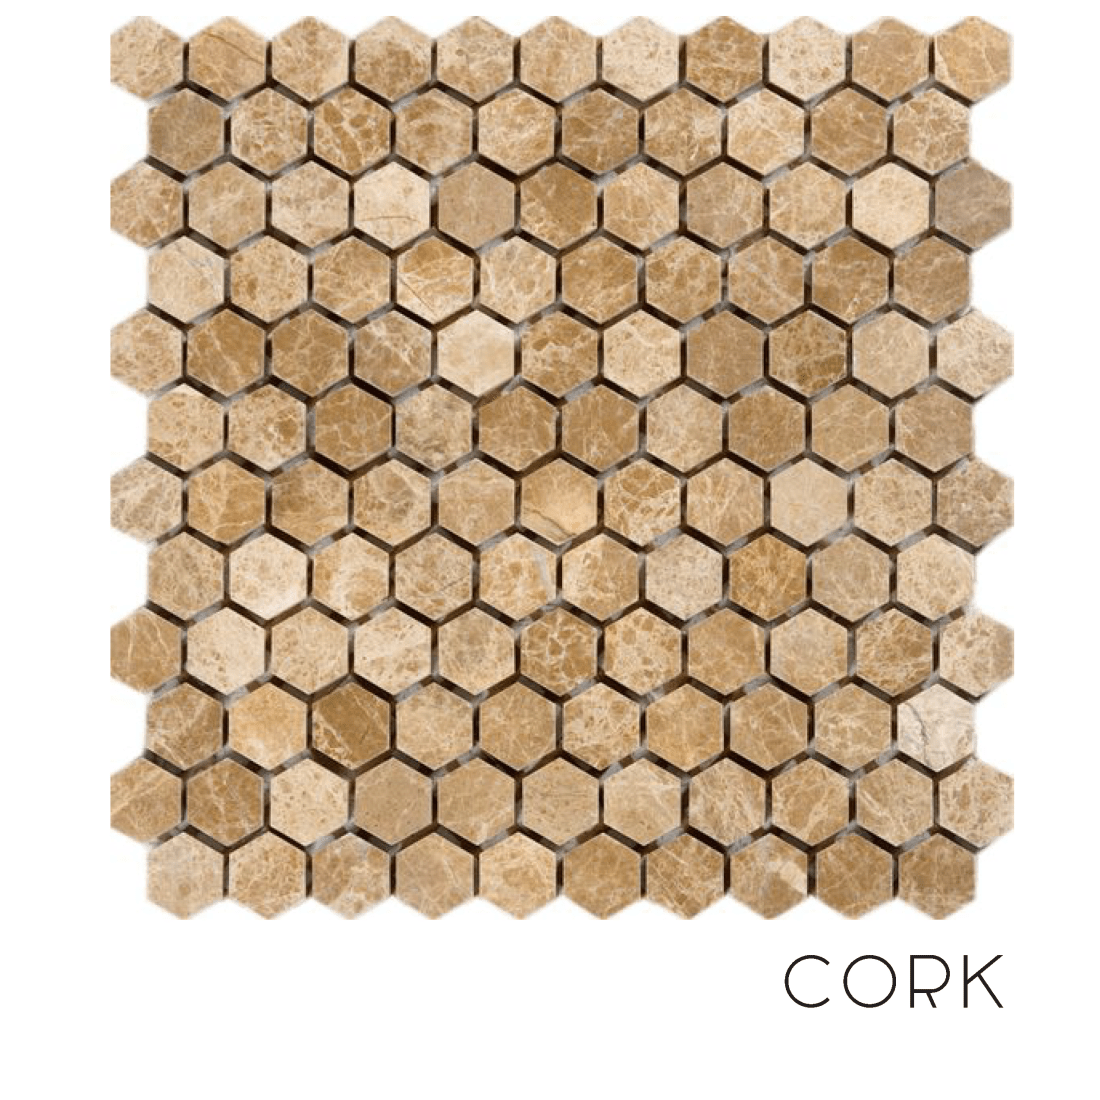 When to use a cork surface in a bathroom.